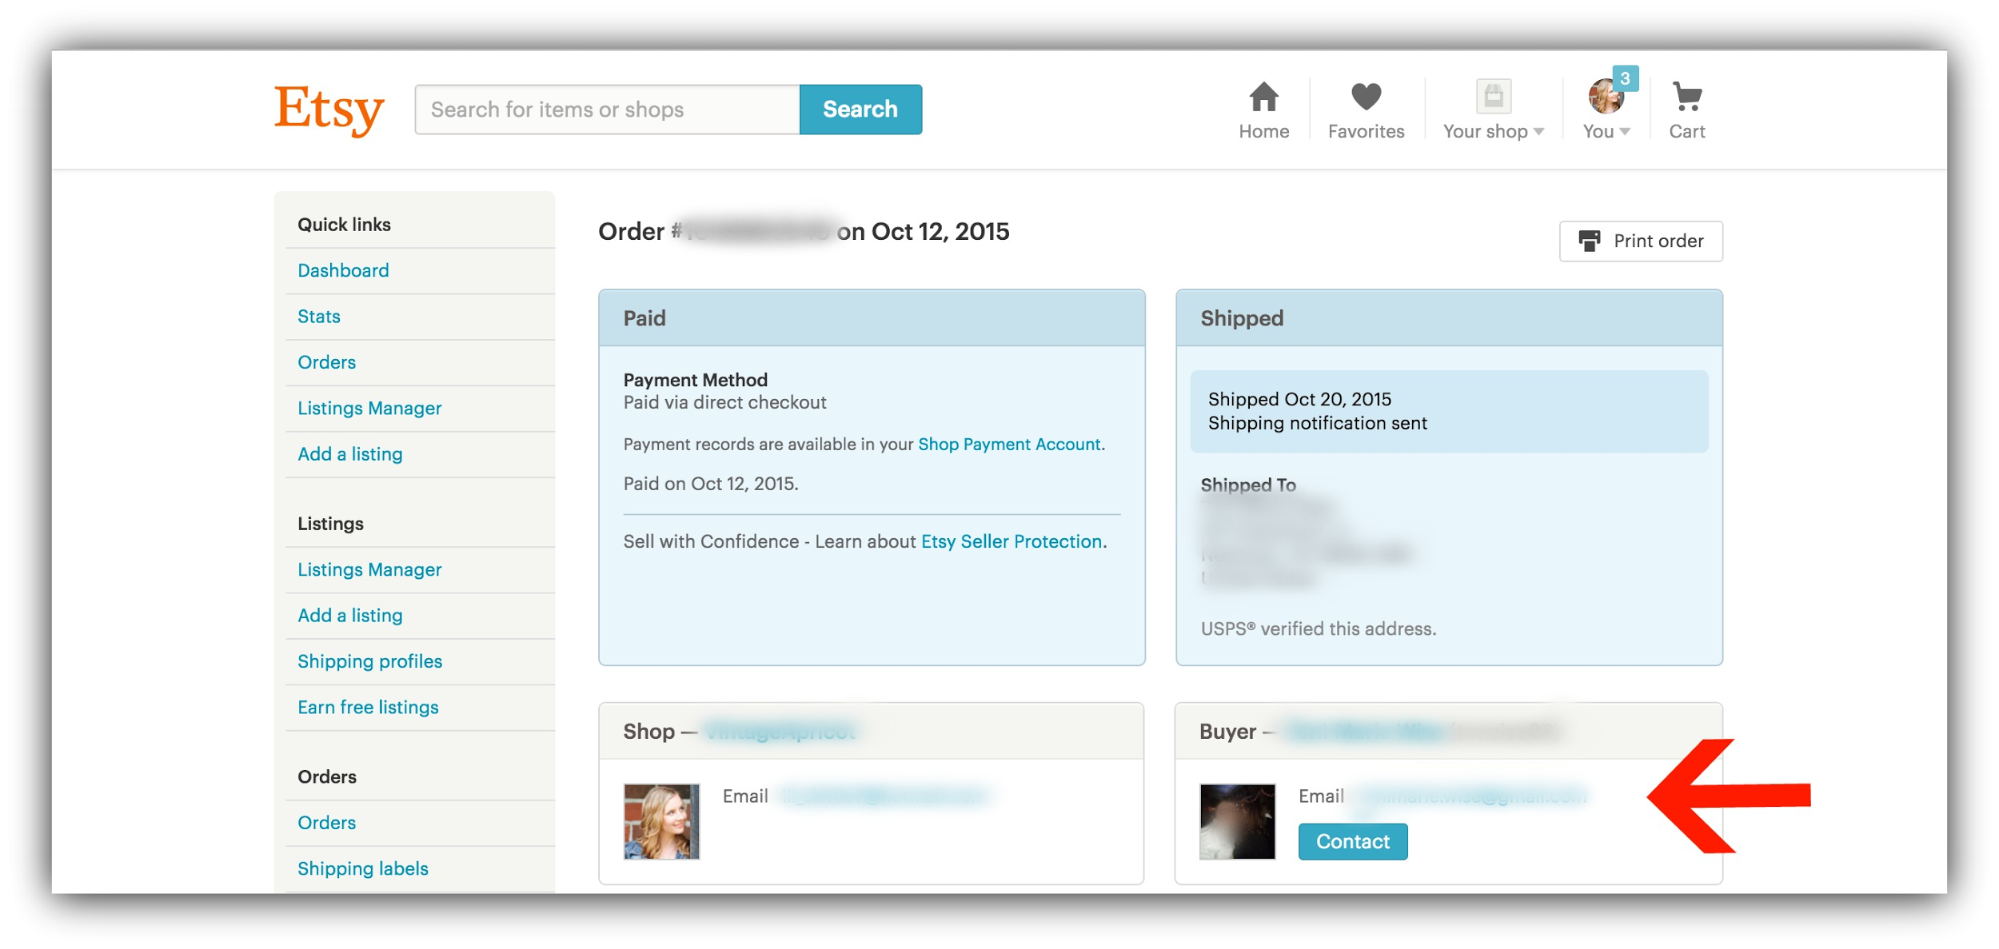 Screenshot showing an Etsy order confirmation page, highlighting where you can see a customer